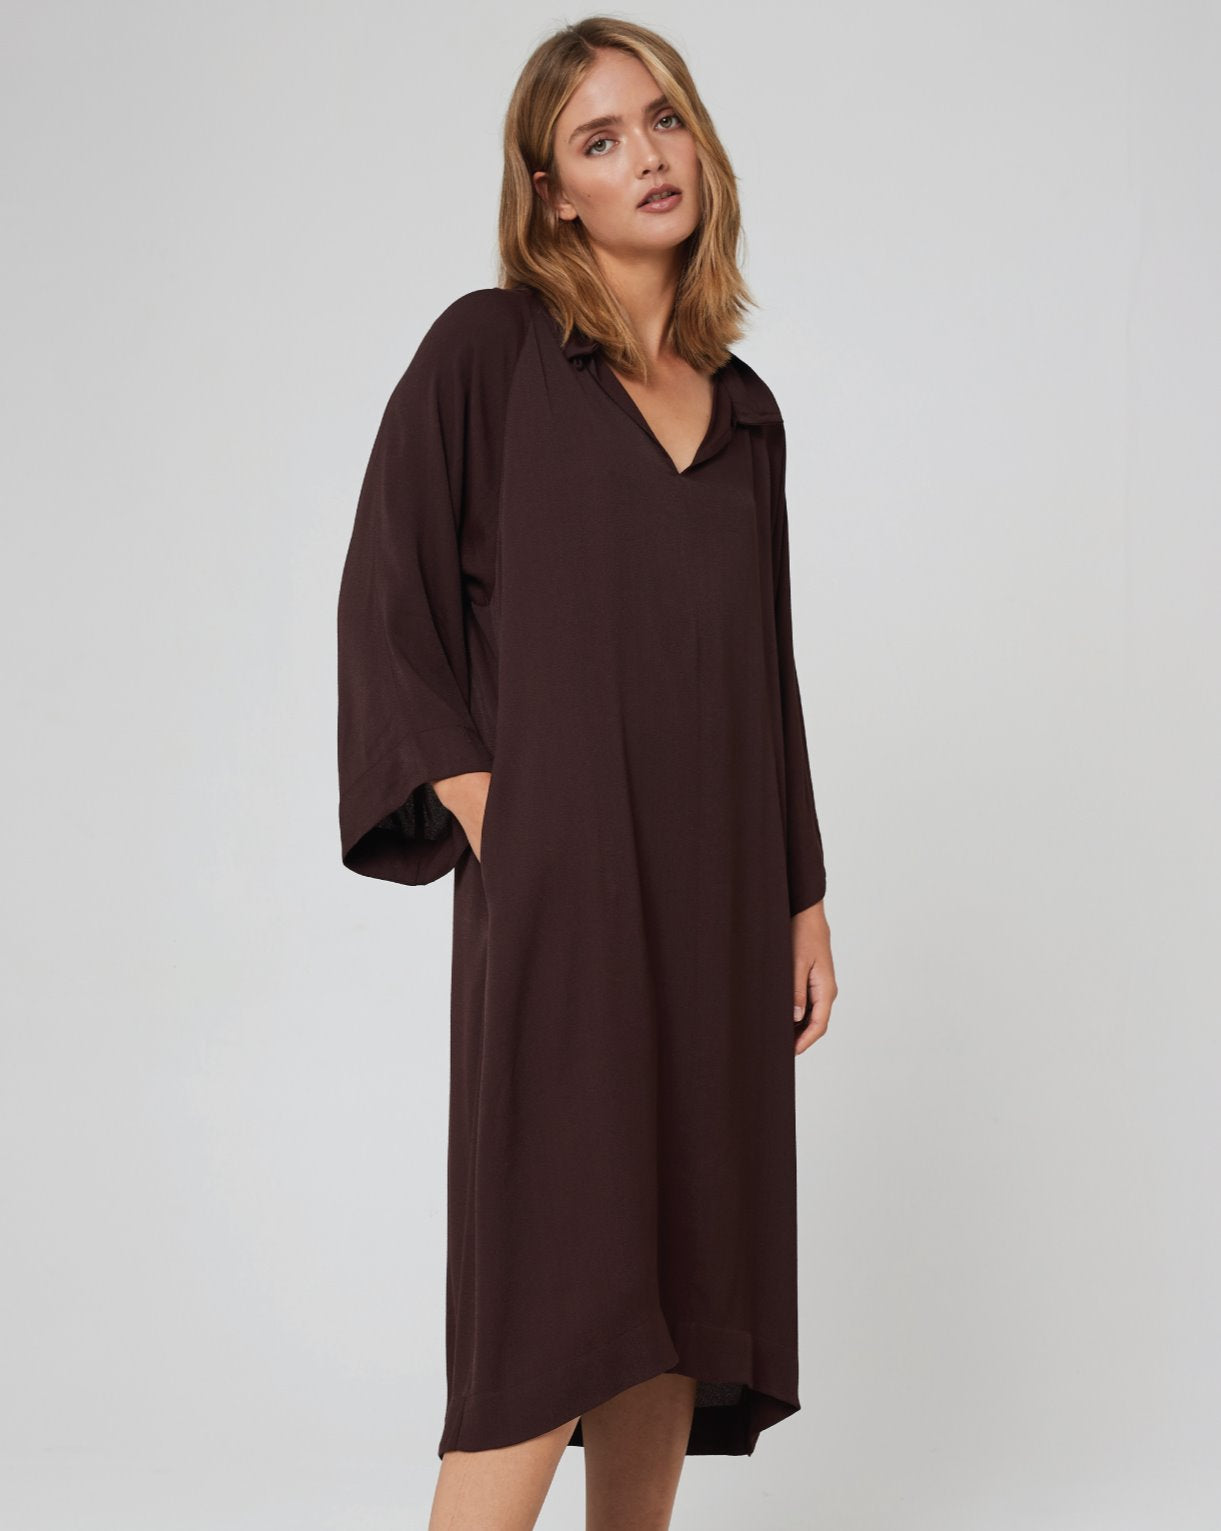 Morrison Julienne Espresso Dress